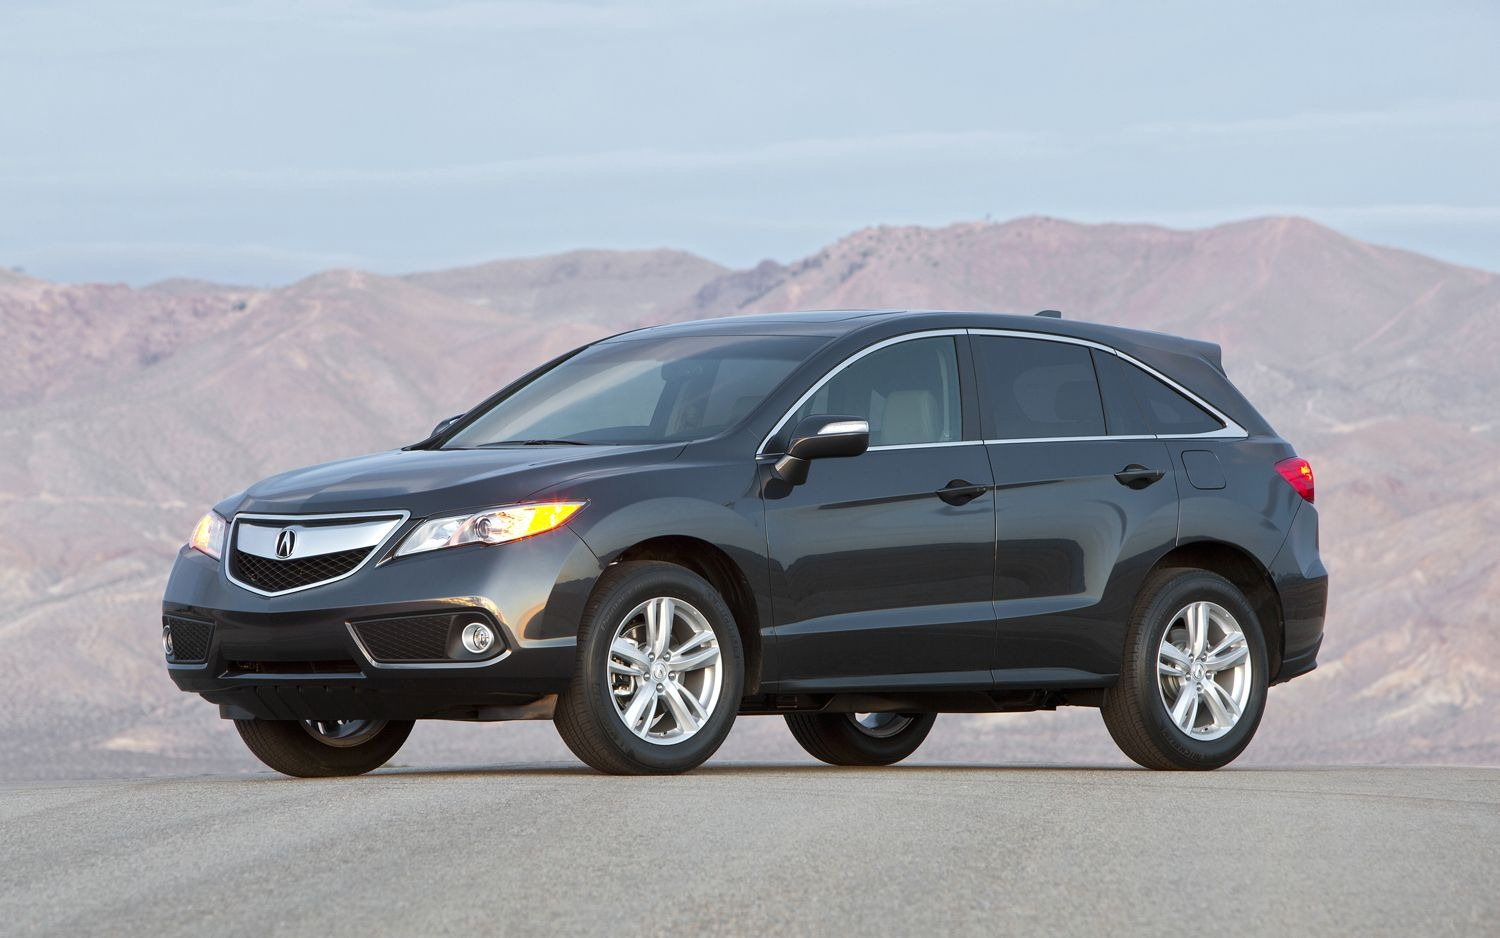 2013 Acura RDX Crossover Official photos of 2013 Acura ILX Sedan and RDX Crossover released